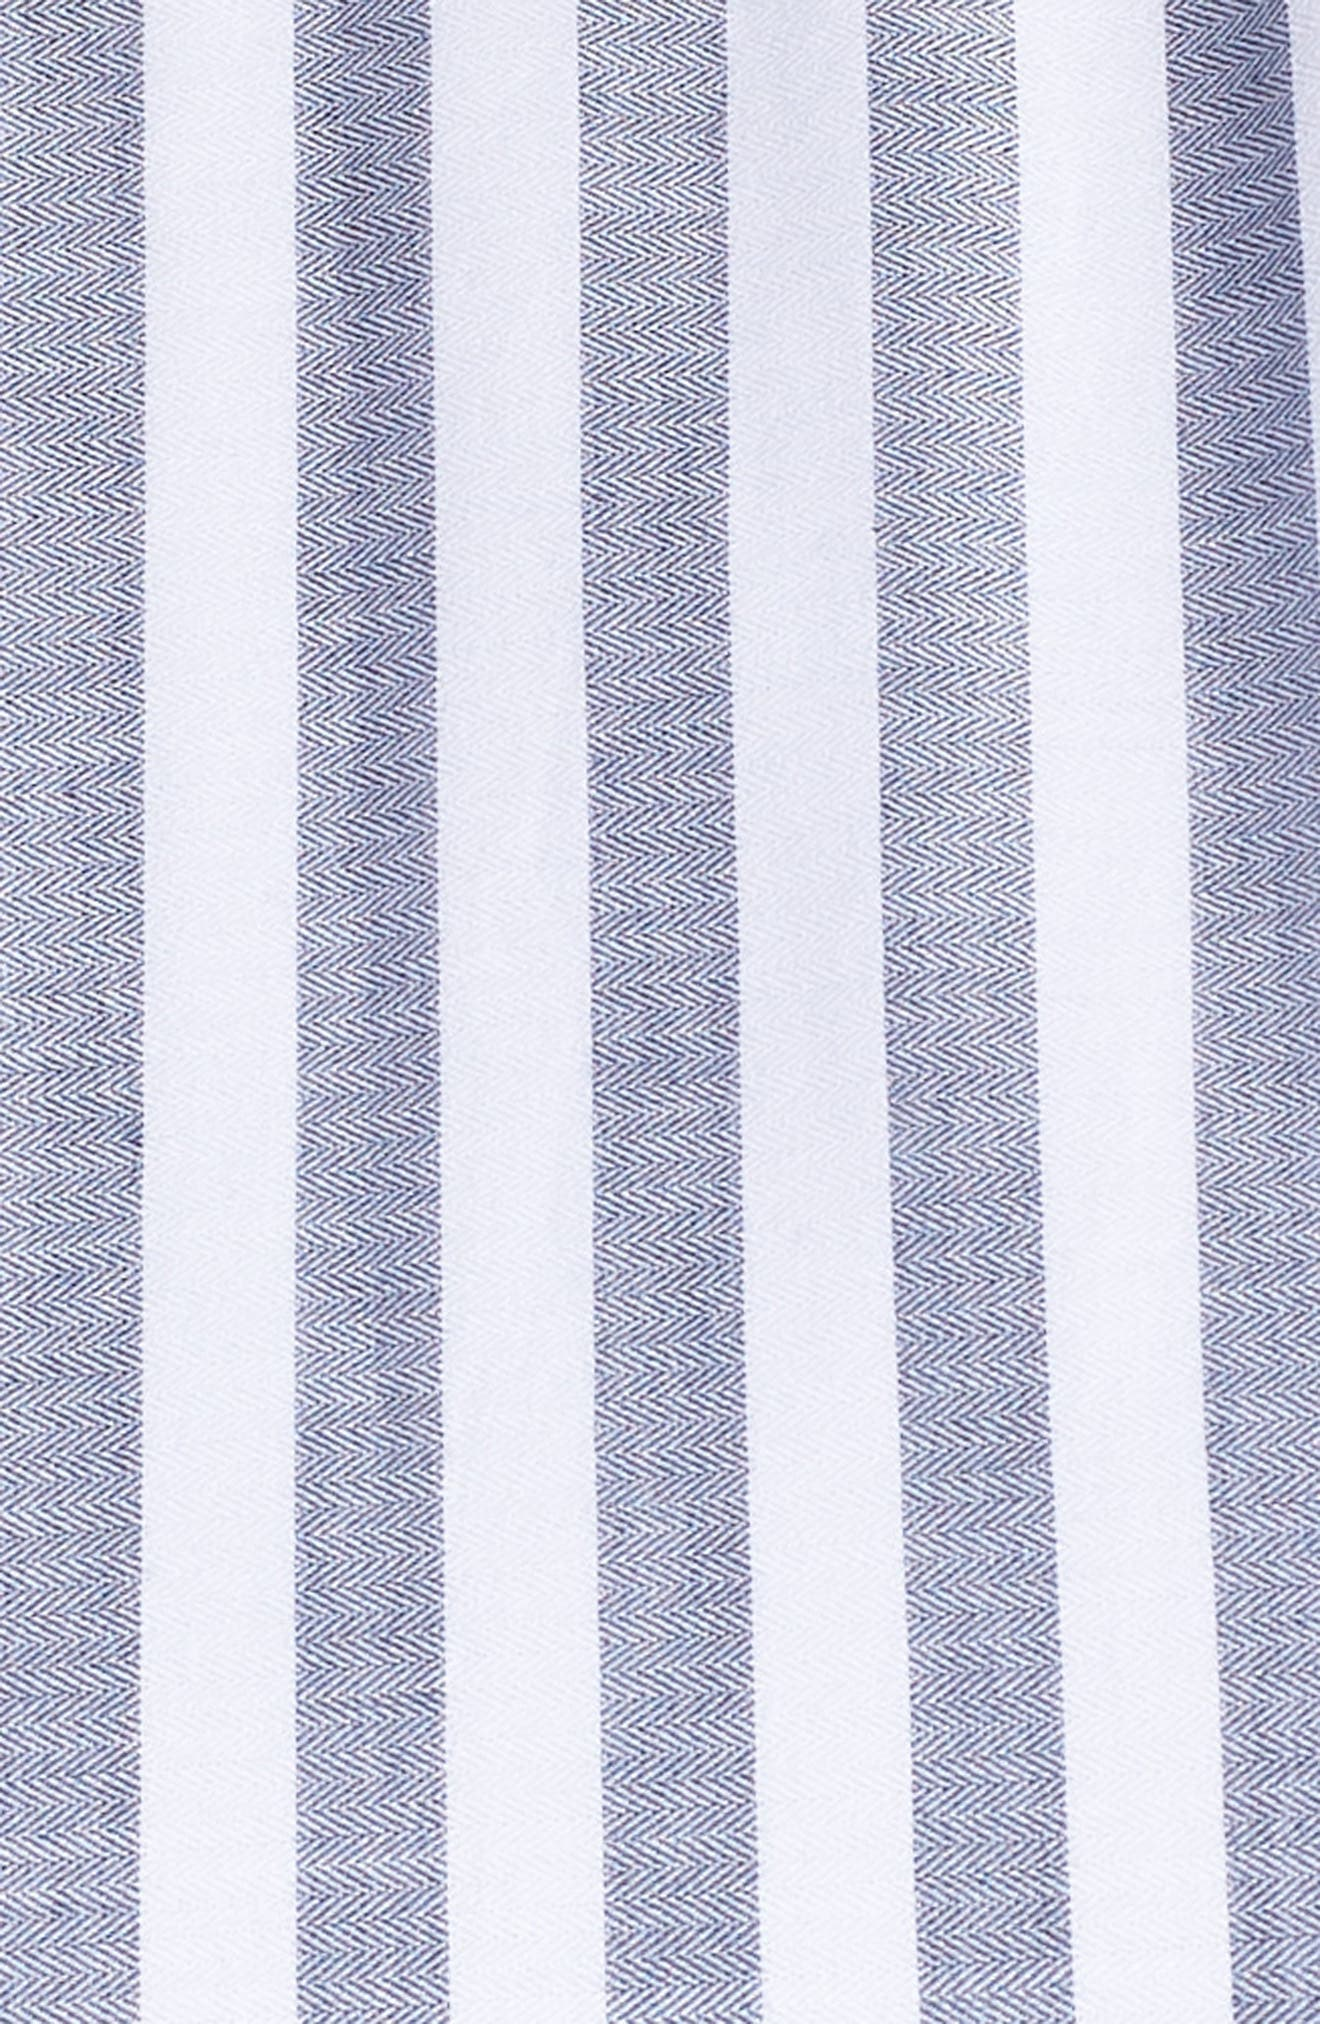 Tiered Stripe Halter Maxi Dress,                             Alternate thumbnail 6, color,                             IVORY